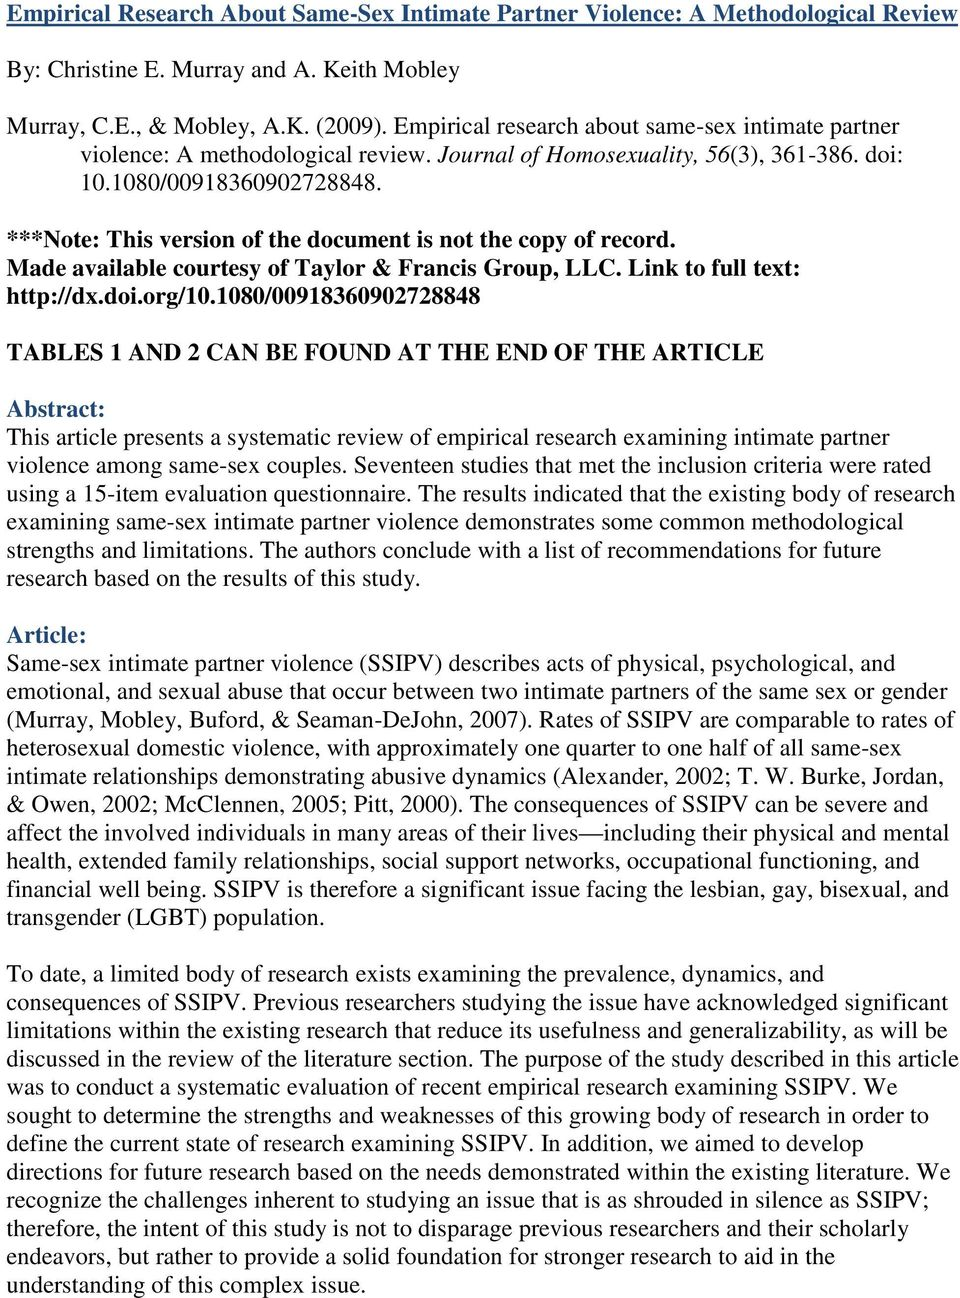 ***Note: This version of the document is not the copy of record. Made available courtesy of Taylor & Francis Group, LLC. Link to full text: http://dx.doi.org/10.